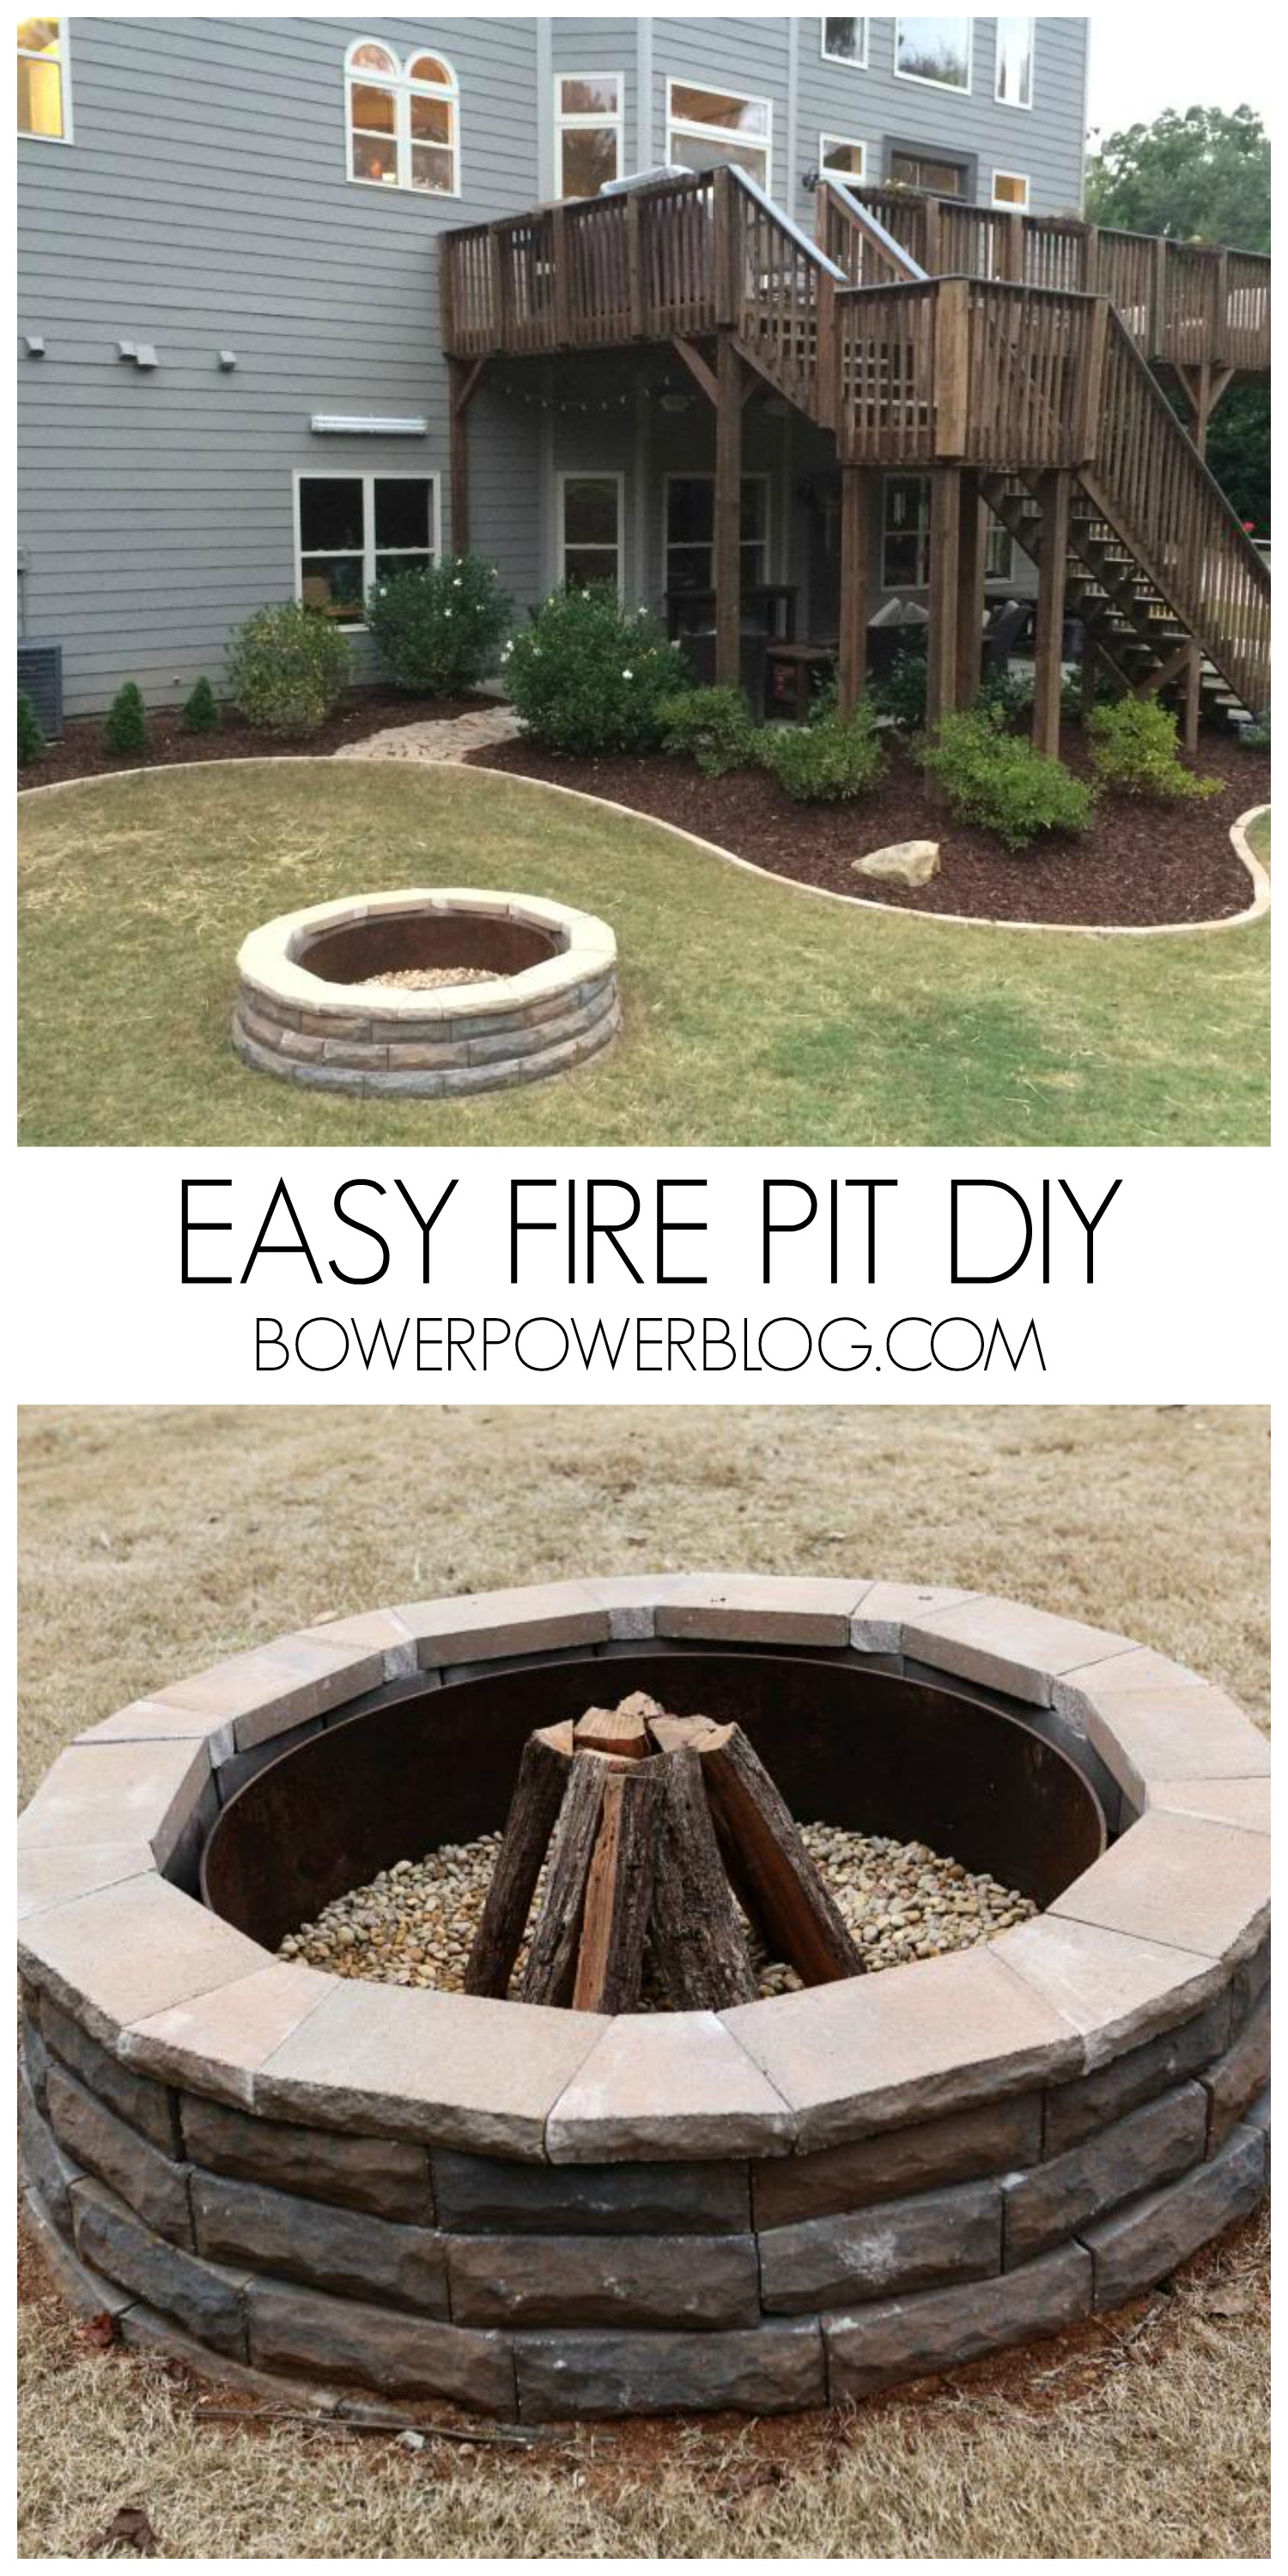 Build it or Weld It 16 Warm Outdoor Stone and Metal Fire Pit Ideas